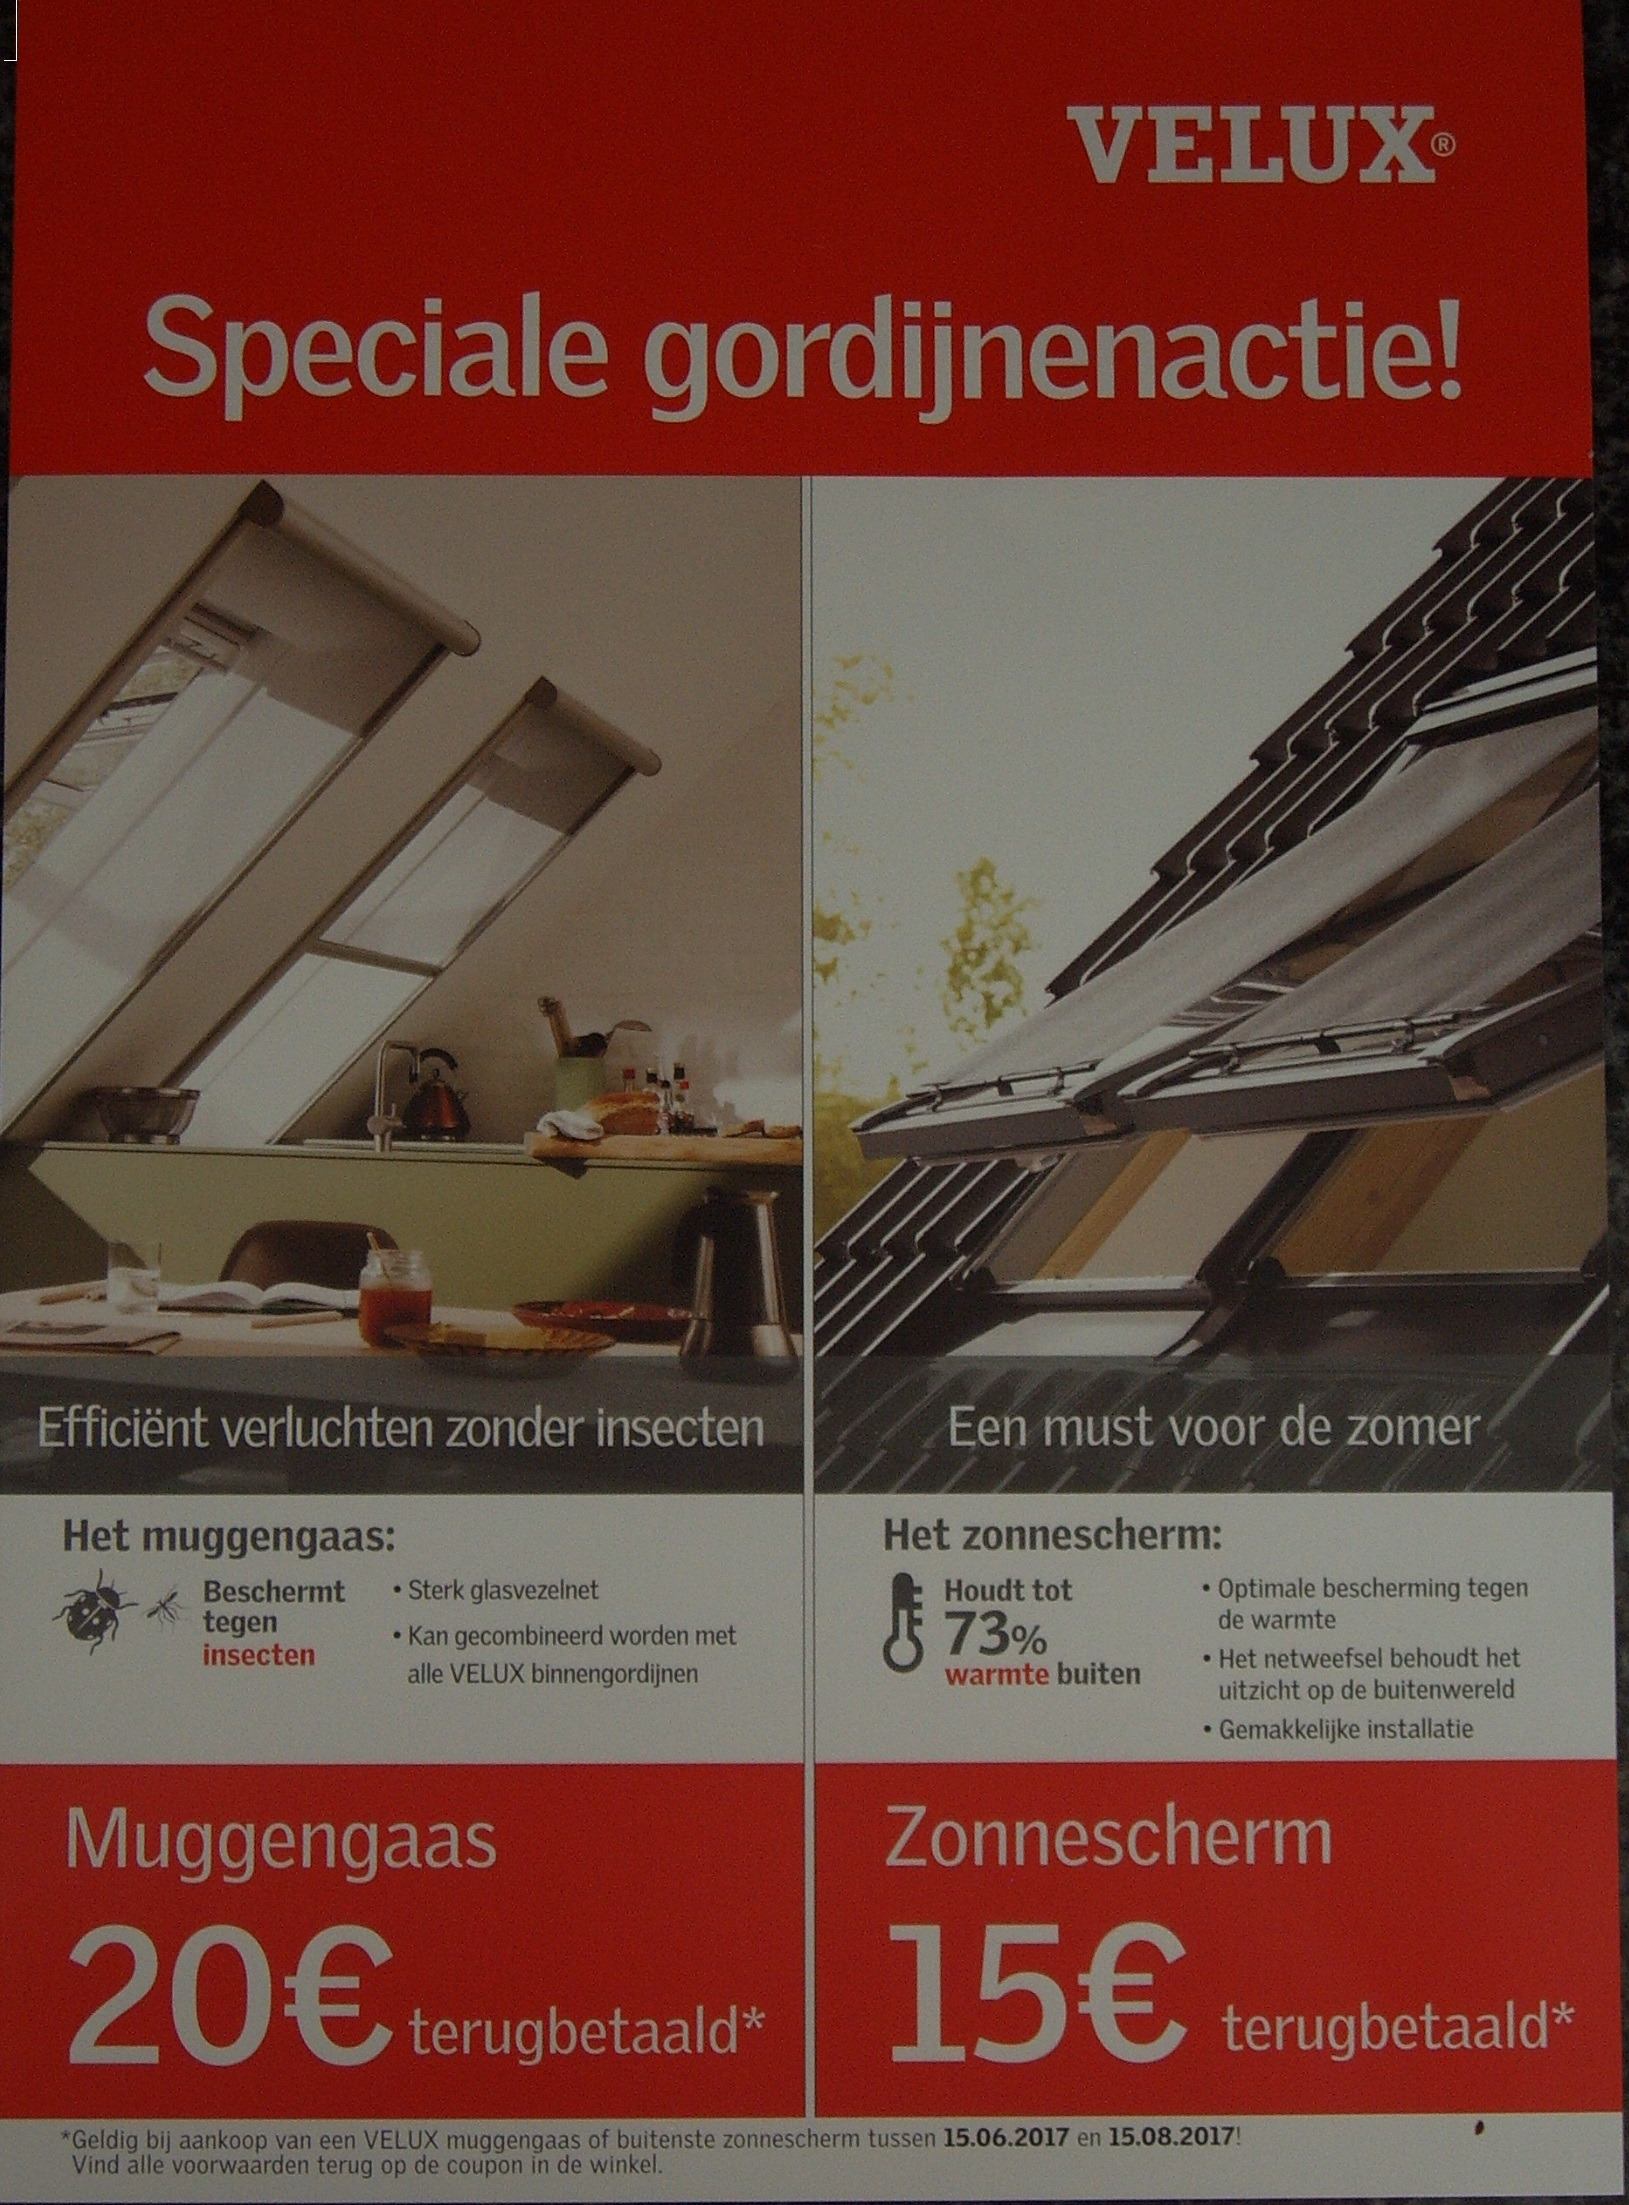 promo velux the velux integra is a remote control roof window that allows you to control your. Black Bedroom Furniture Sets. Home Design Ideas